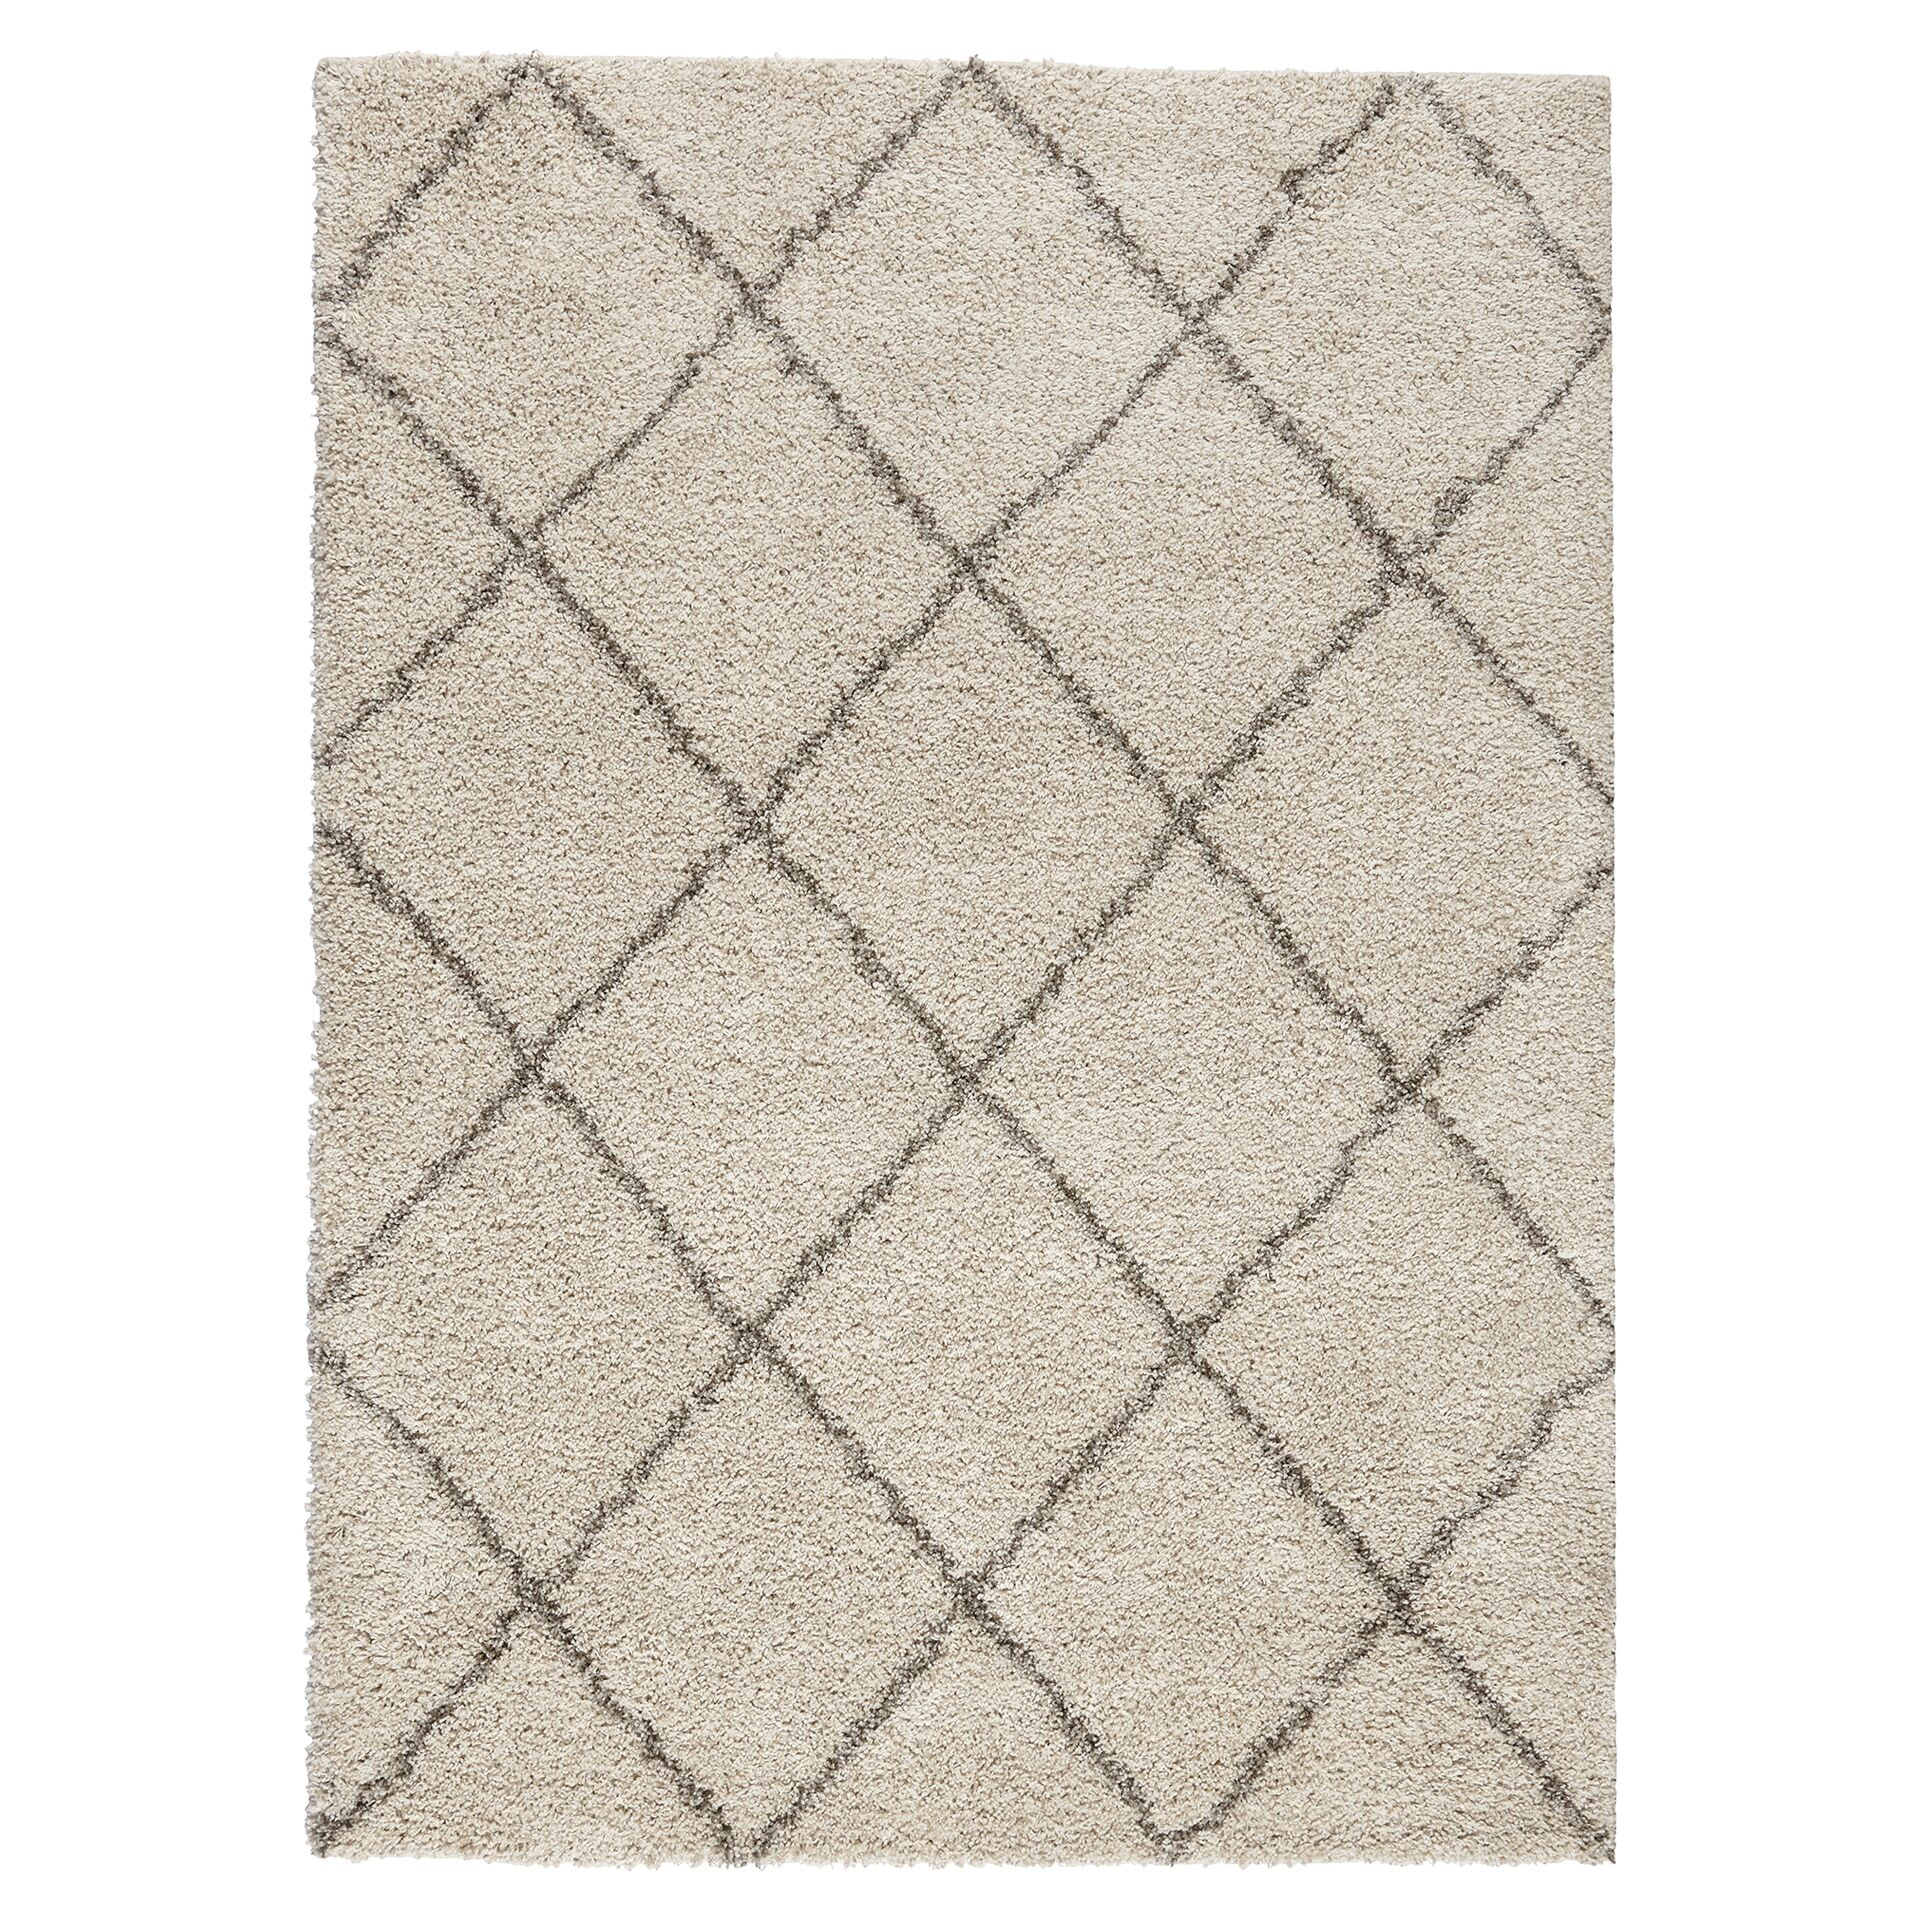 Kalypso Ivory Area Rug Rug Size: Rectangle 9' x 12'